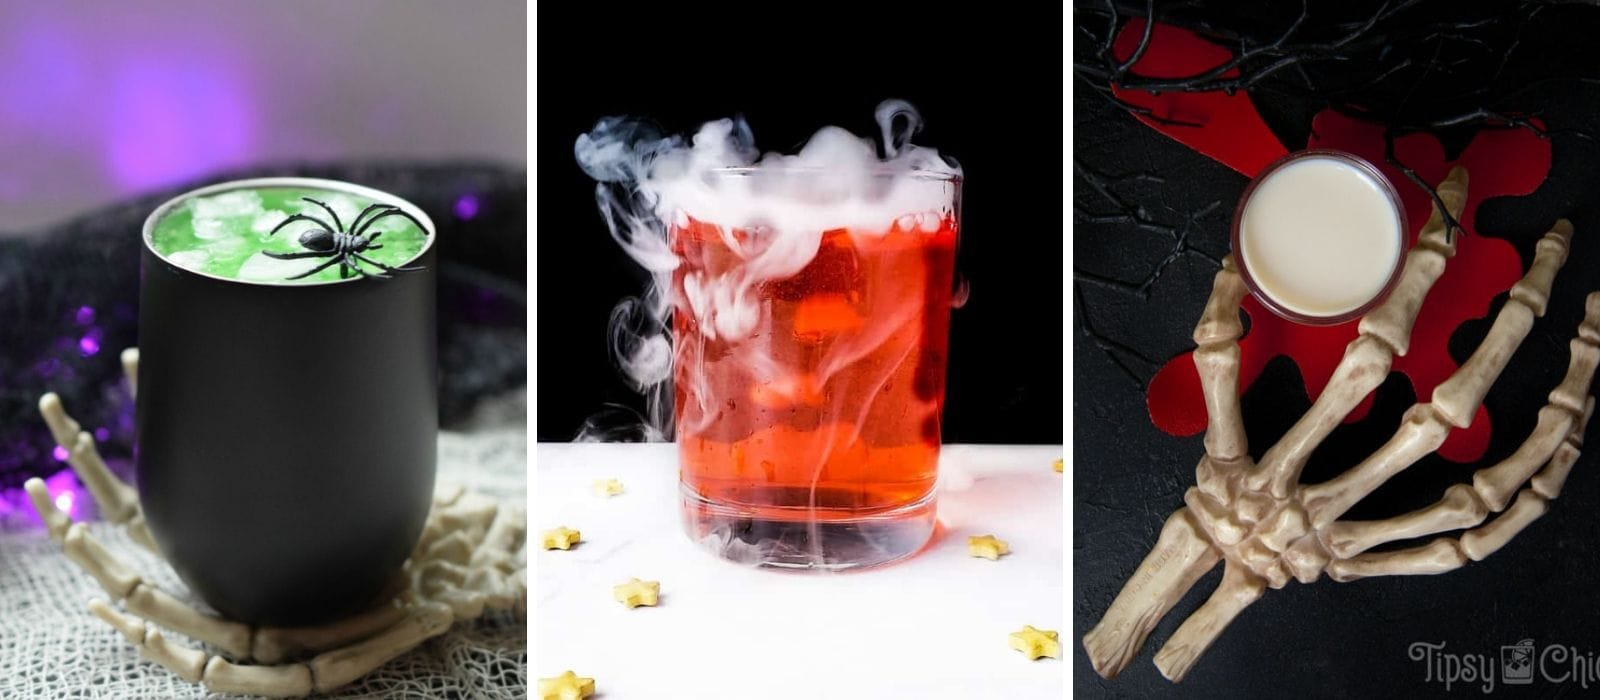 Fun Halloween Drinks: Alcoholic and Non-alcoholic Fun Halloween Drinks  Halloween Drinks  Spooky Drinks  Best Halloween Drinks #halloween #partytime #cocktails #spookydrinks